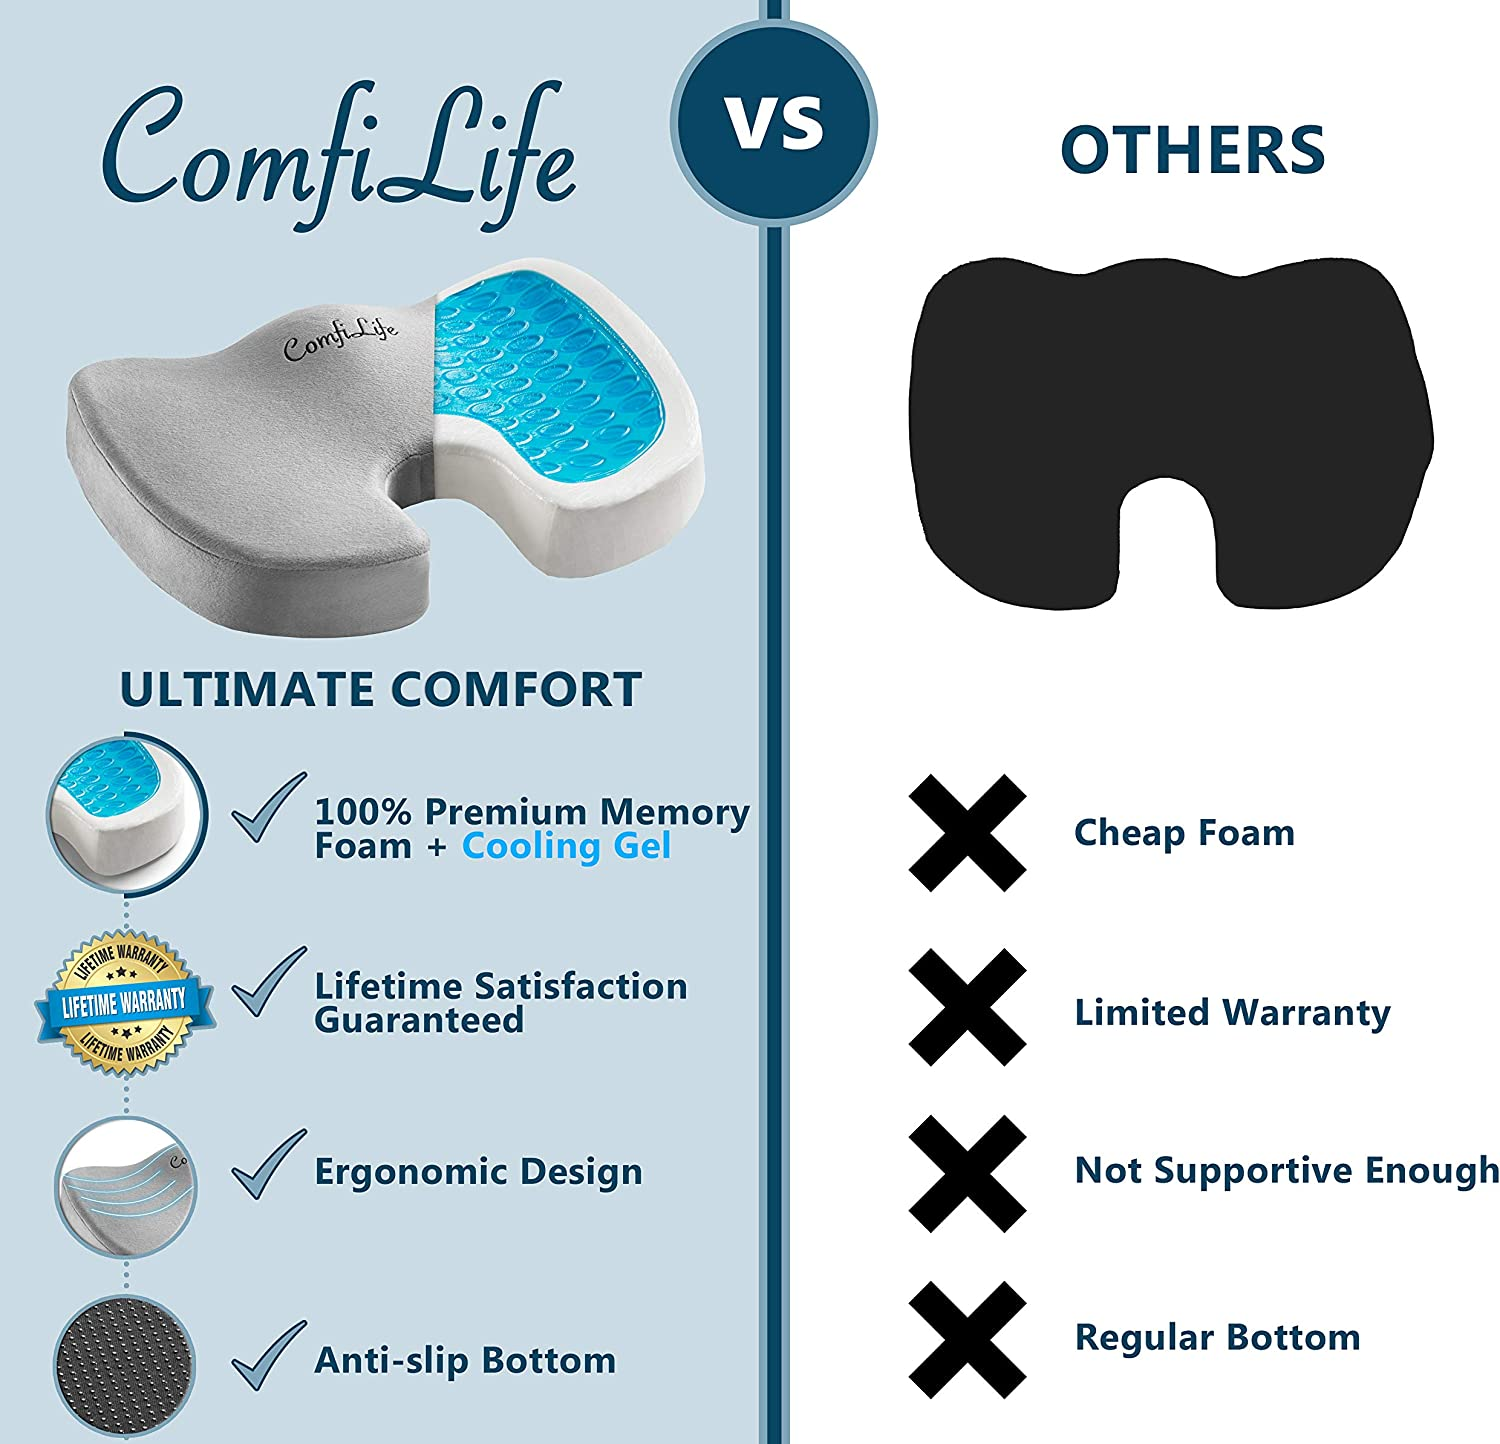 81qIIOFShsL. AC SL1500 - What Are The Best Seat Cushion For Buttock Pain That Help You Sit Comfortably - ChairPicks